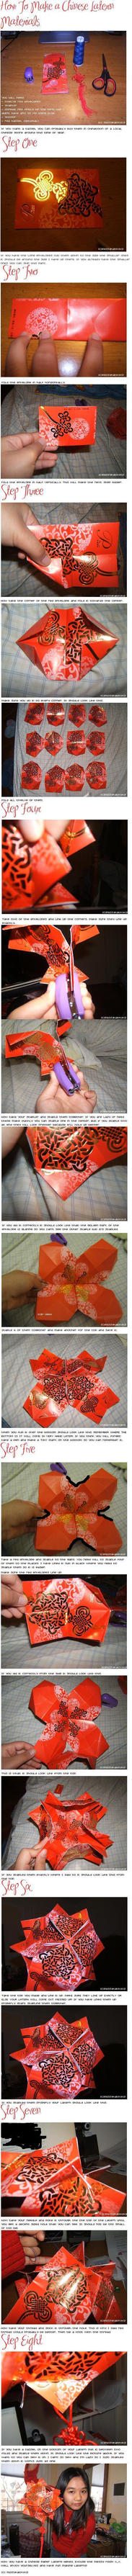 How To Make a Chinese Latern by missykathyx3